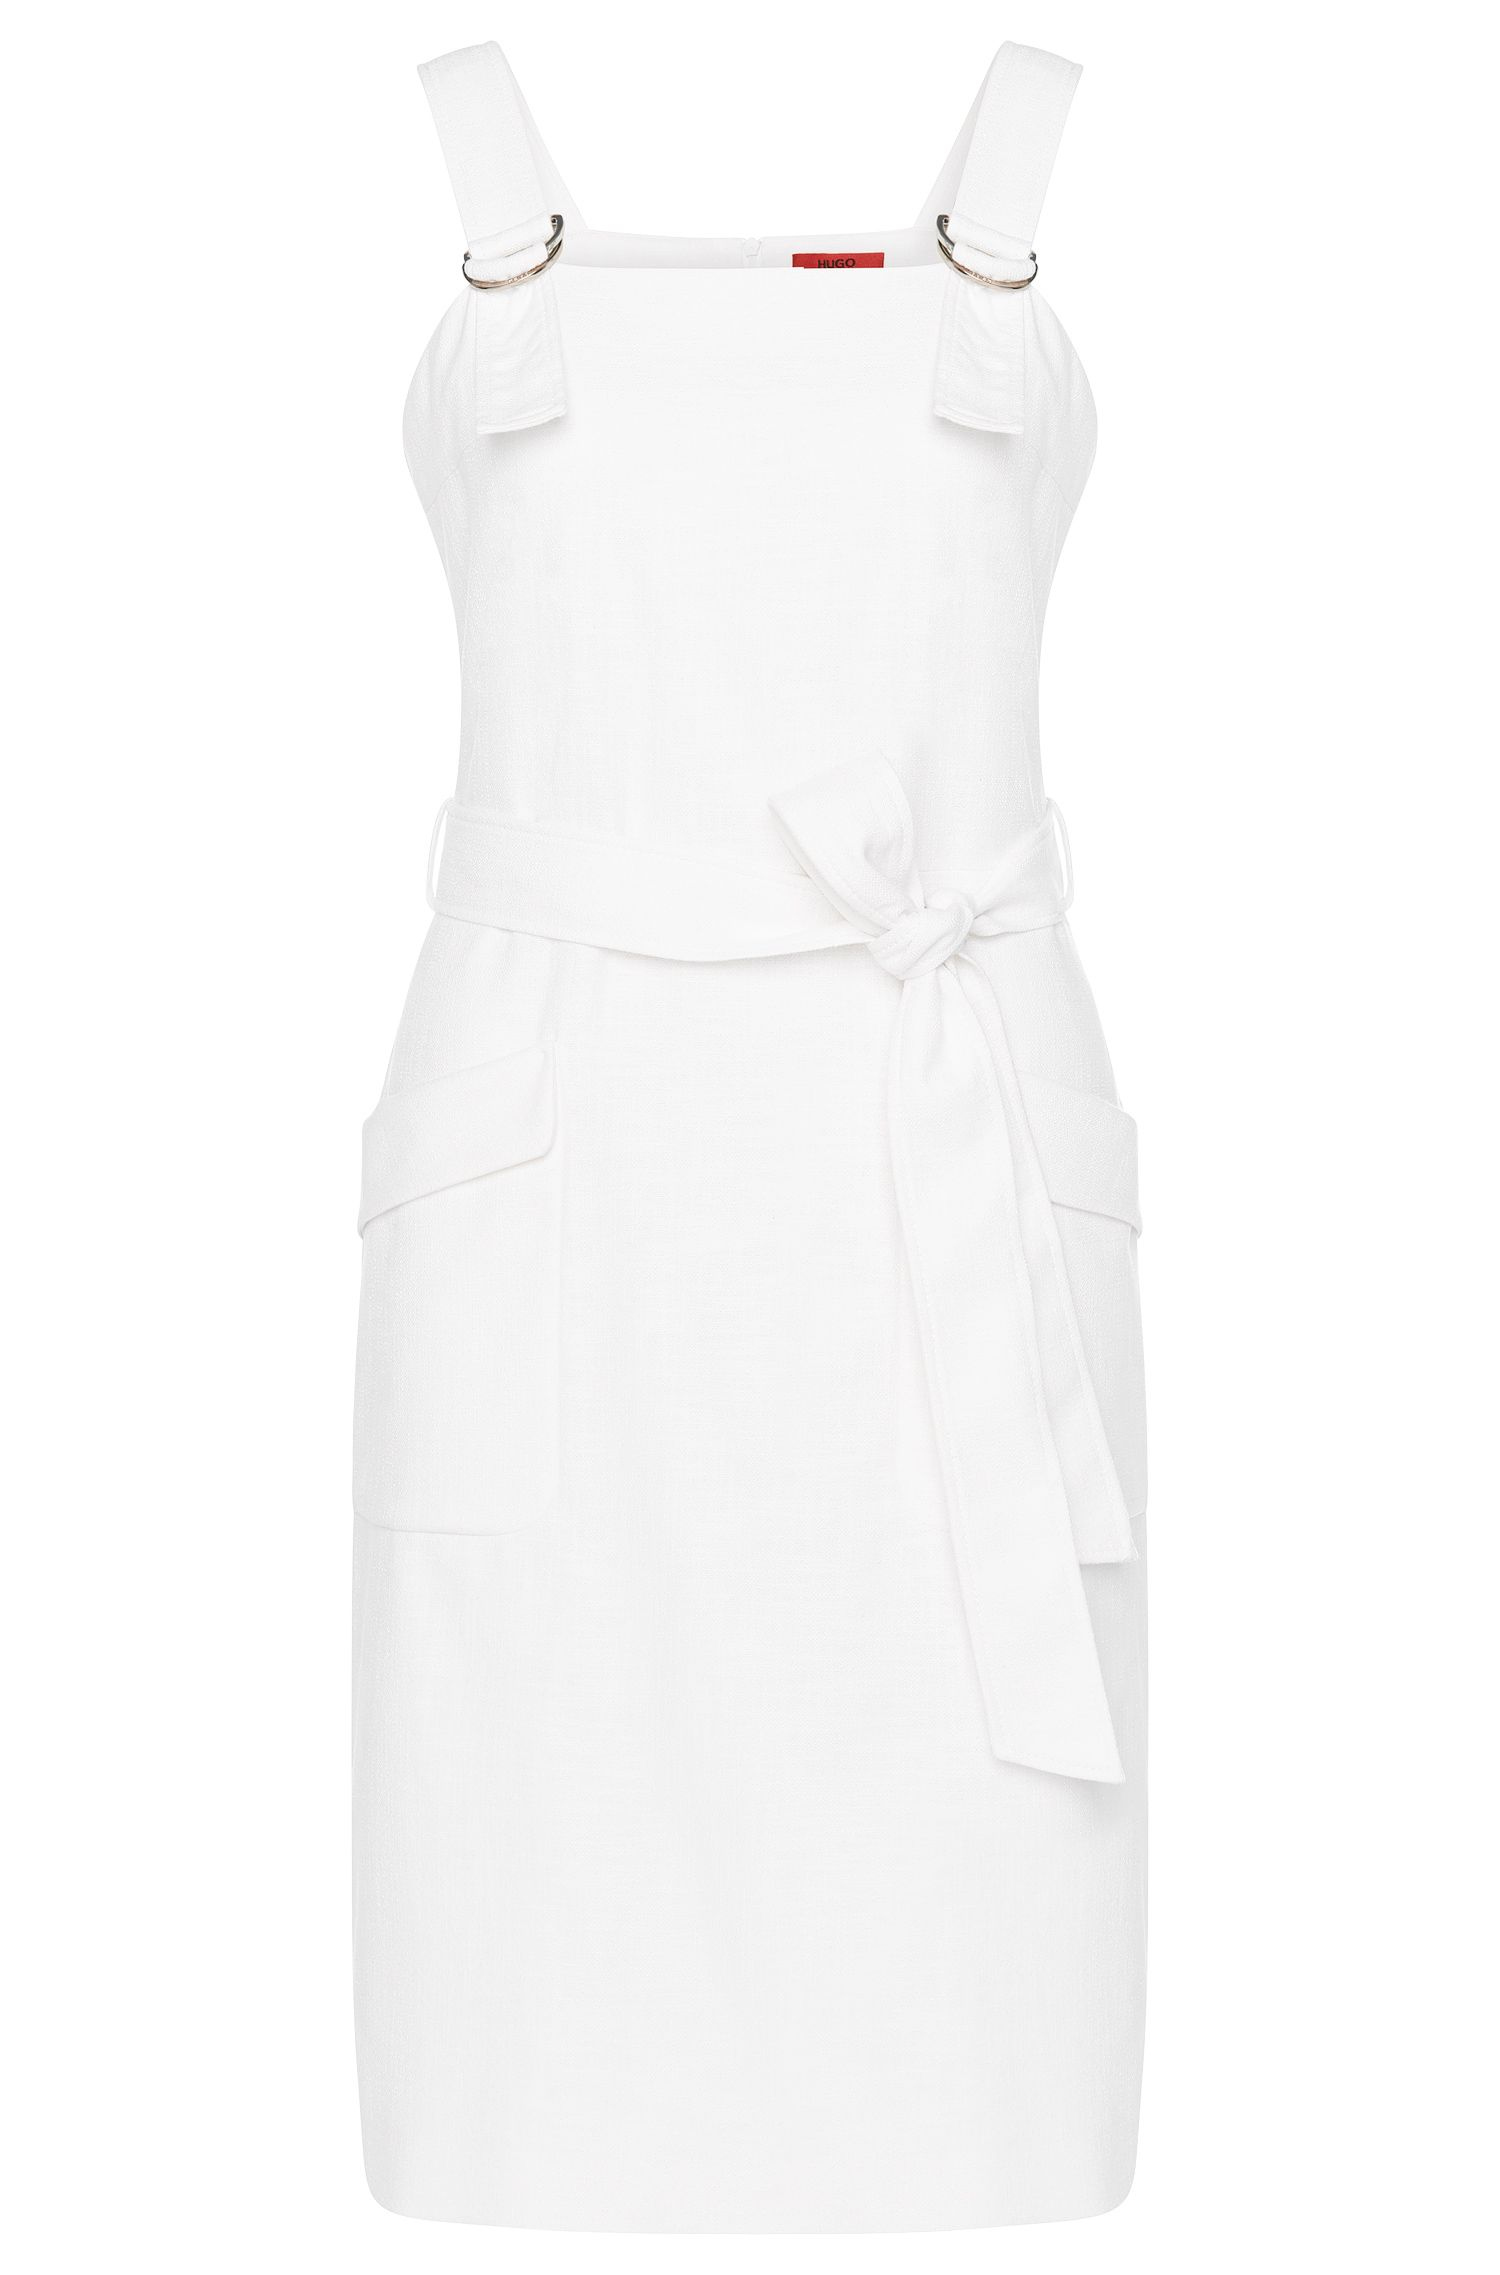 'Kenine' | Stretch Cotton Bend Belted Overall Dress